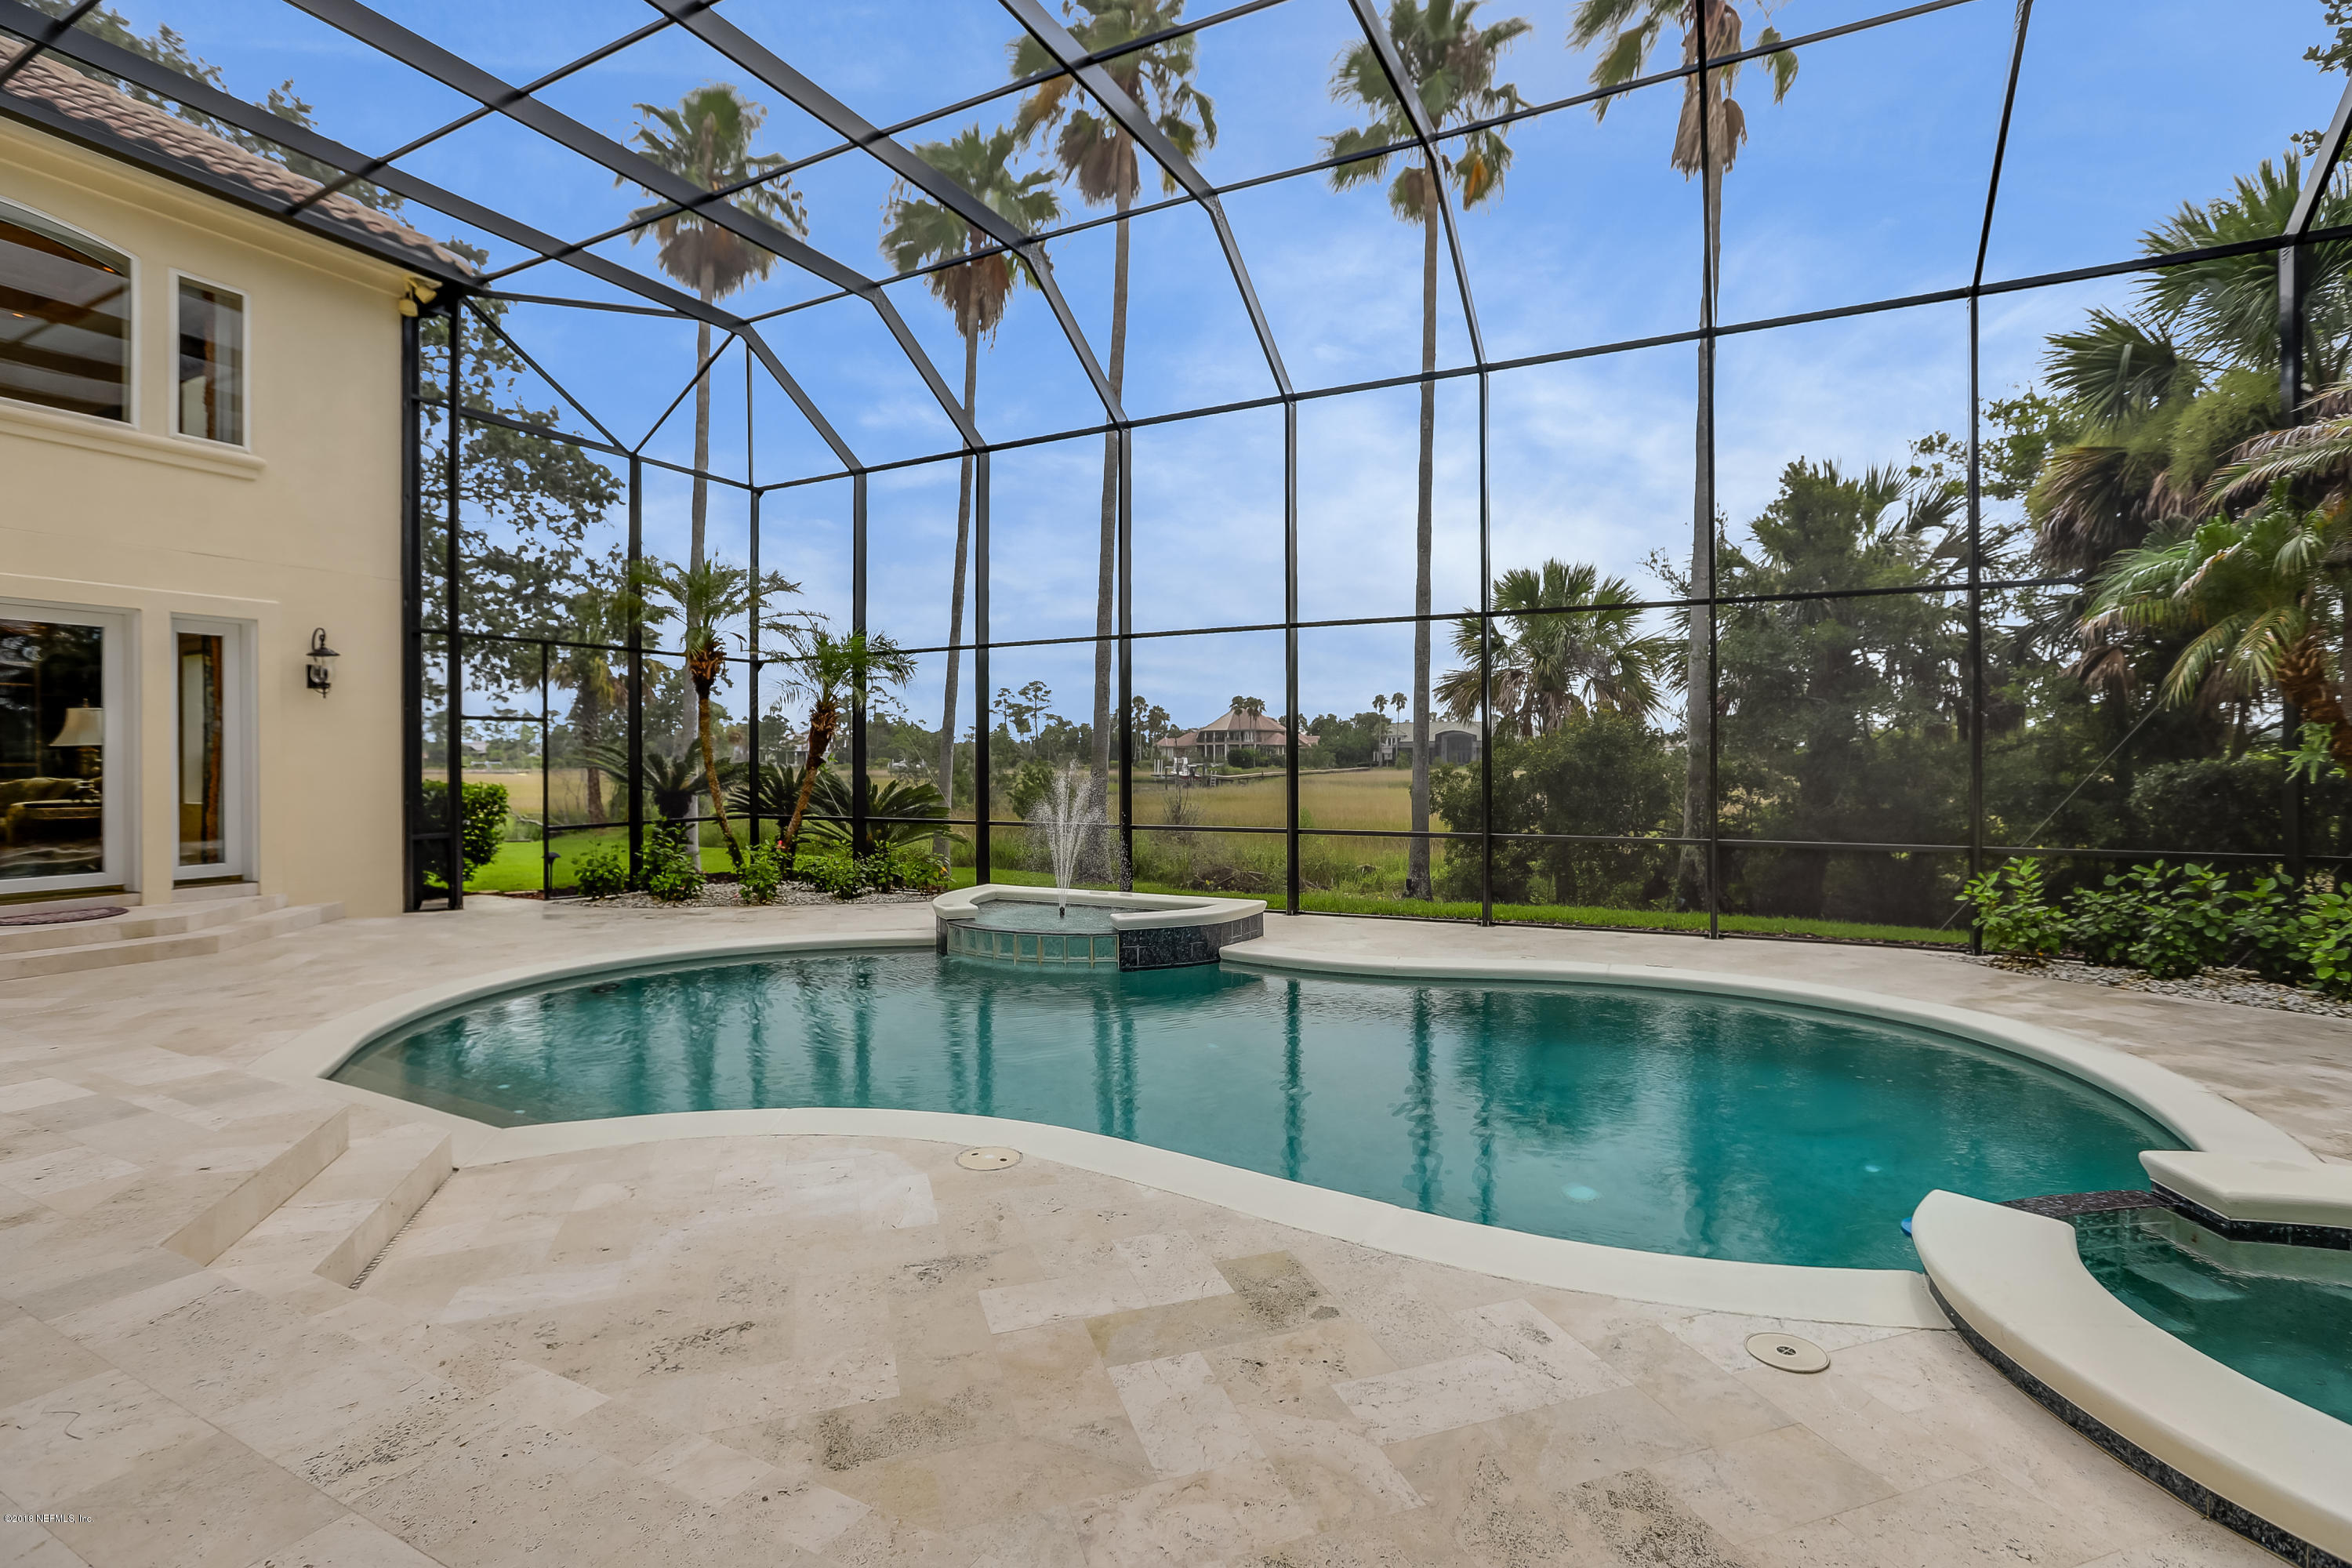 24624 HARBOUR VIEW, PONTE VEDRA BEACH, FLORIDA 32082, 4 Bedrooms Bedrooms, ,6 BathroomsBathrooms,Residential - single family,For sale,HARBOUR VIEW,949474